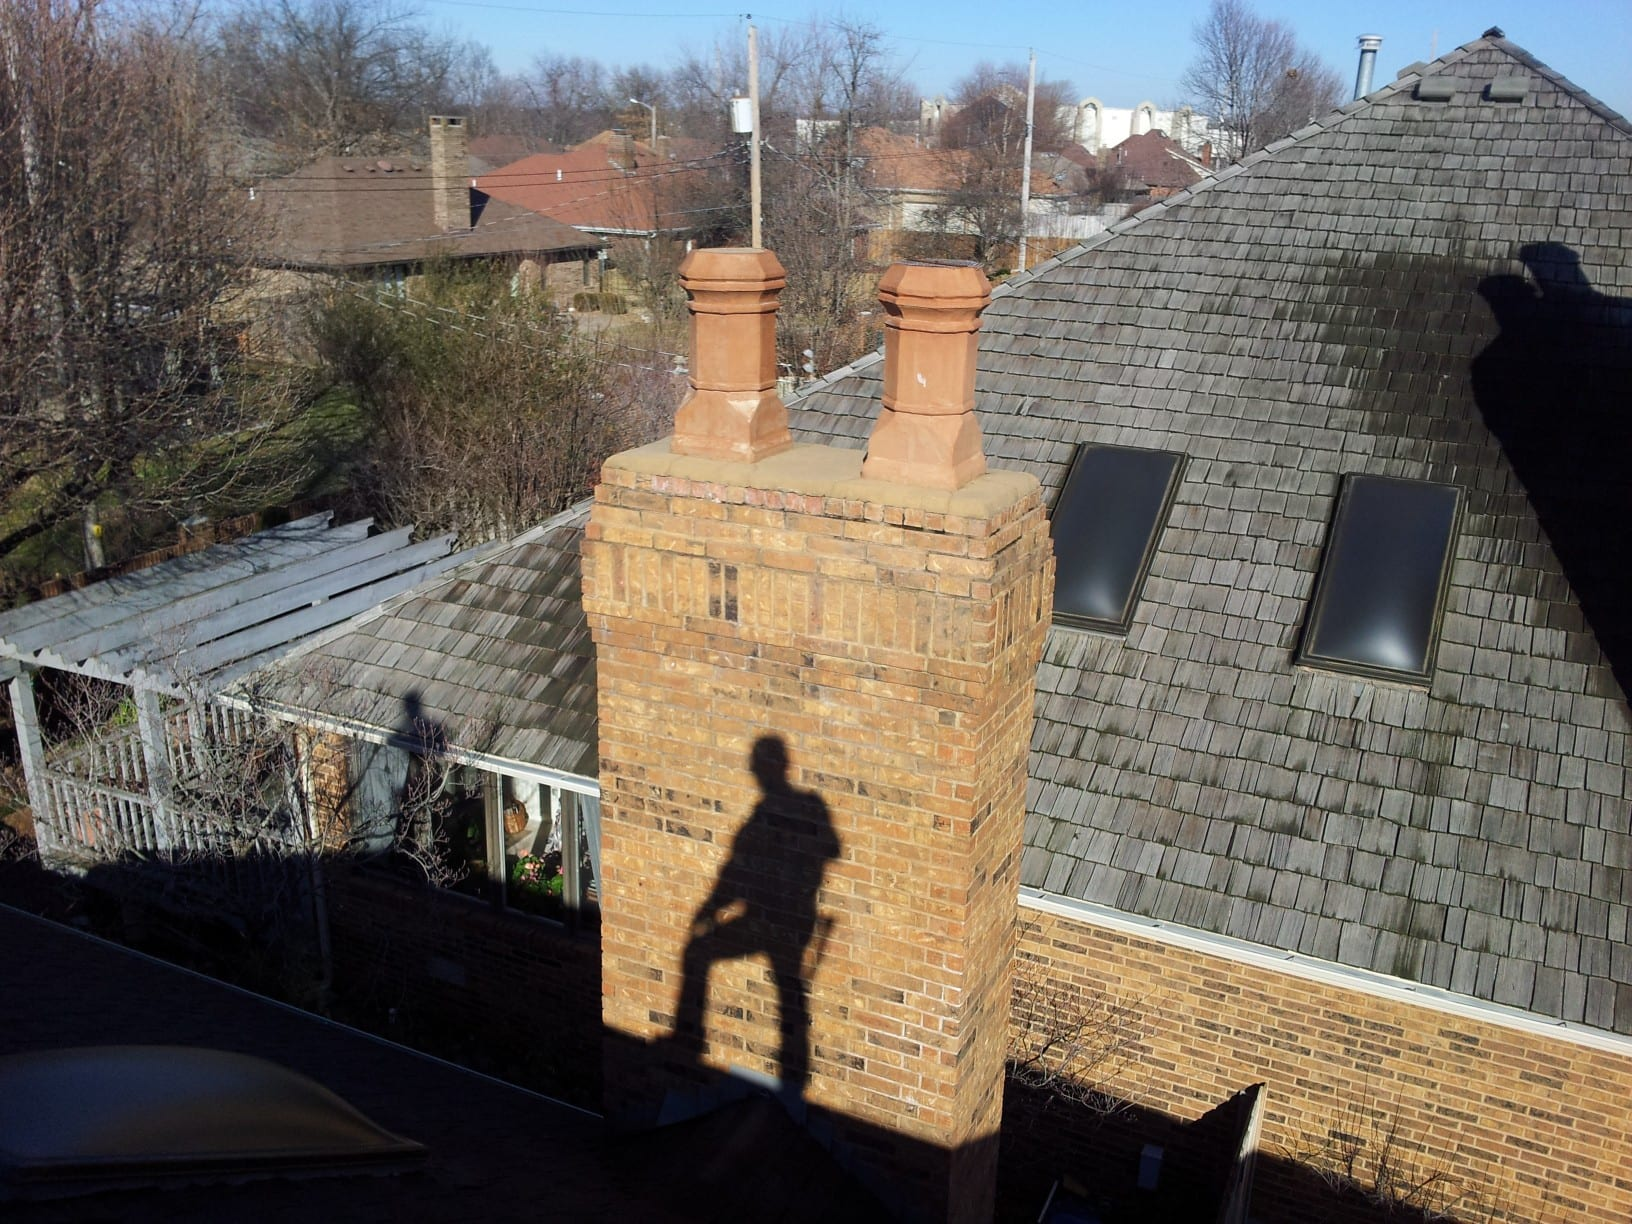 Mirowski Inspections - Inspector Roof Shadow- Home Inspections in Springfield MO